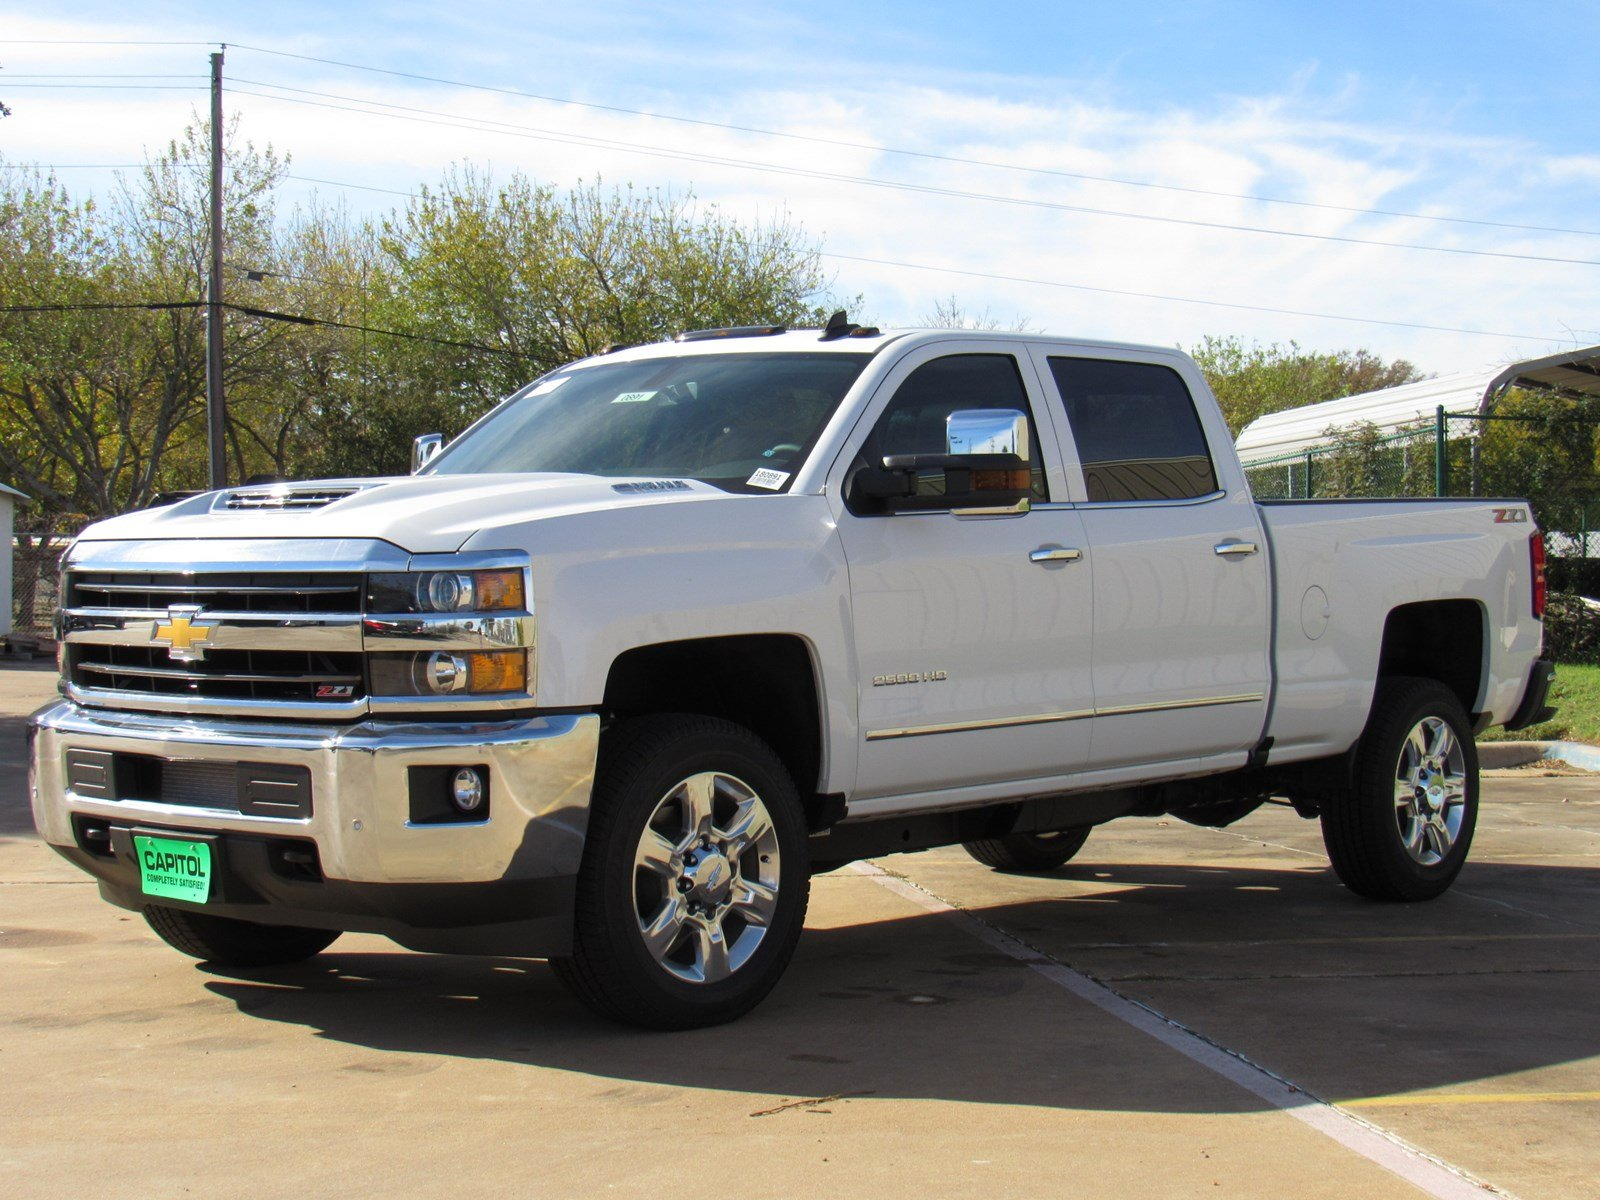 2018 chevrolet silverado wireless charging. Black Bedroom Furniture Sets. Home Design Ideas